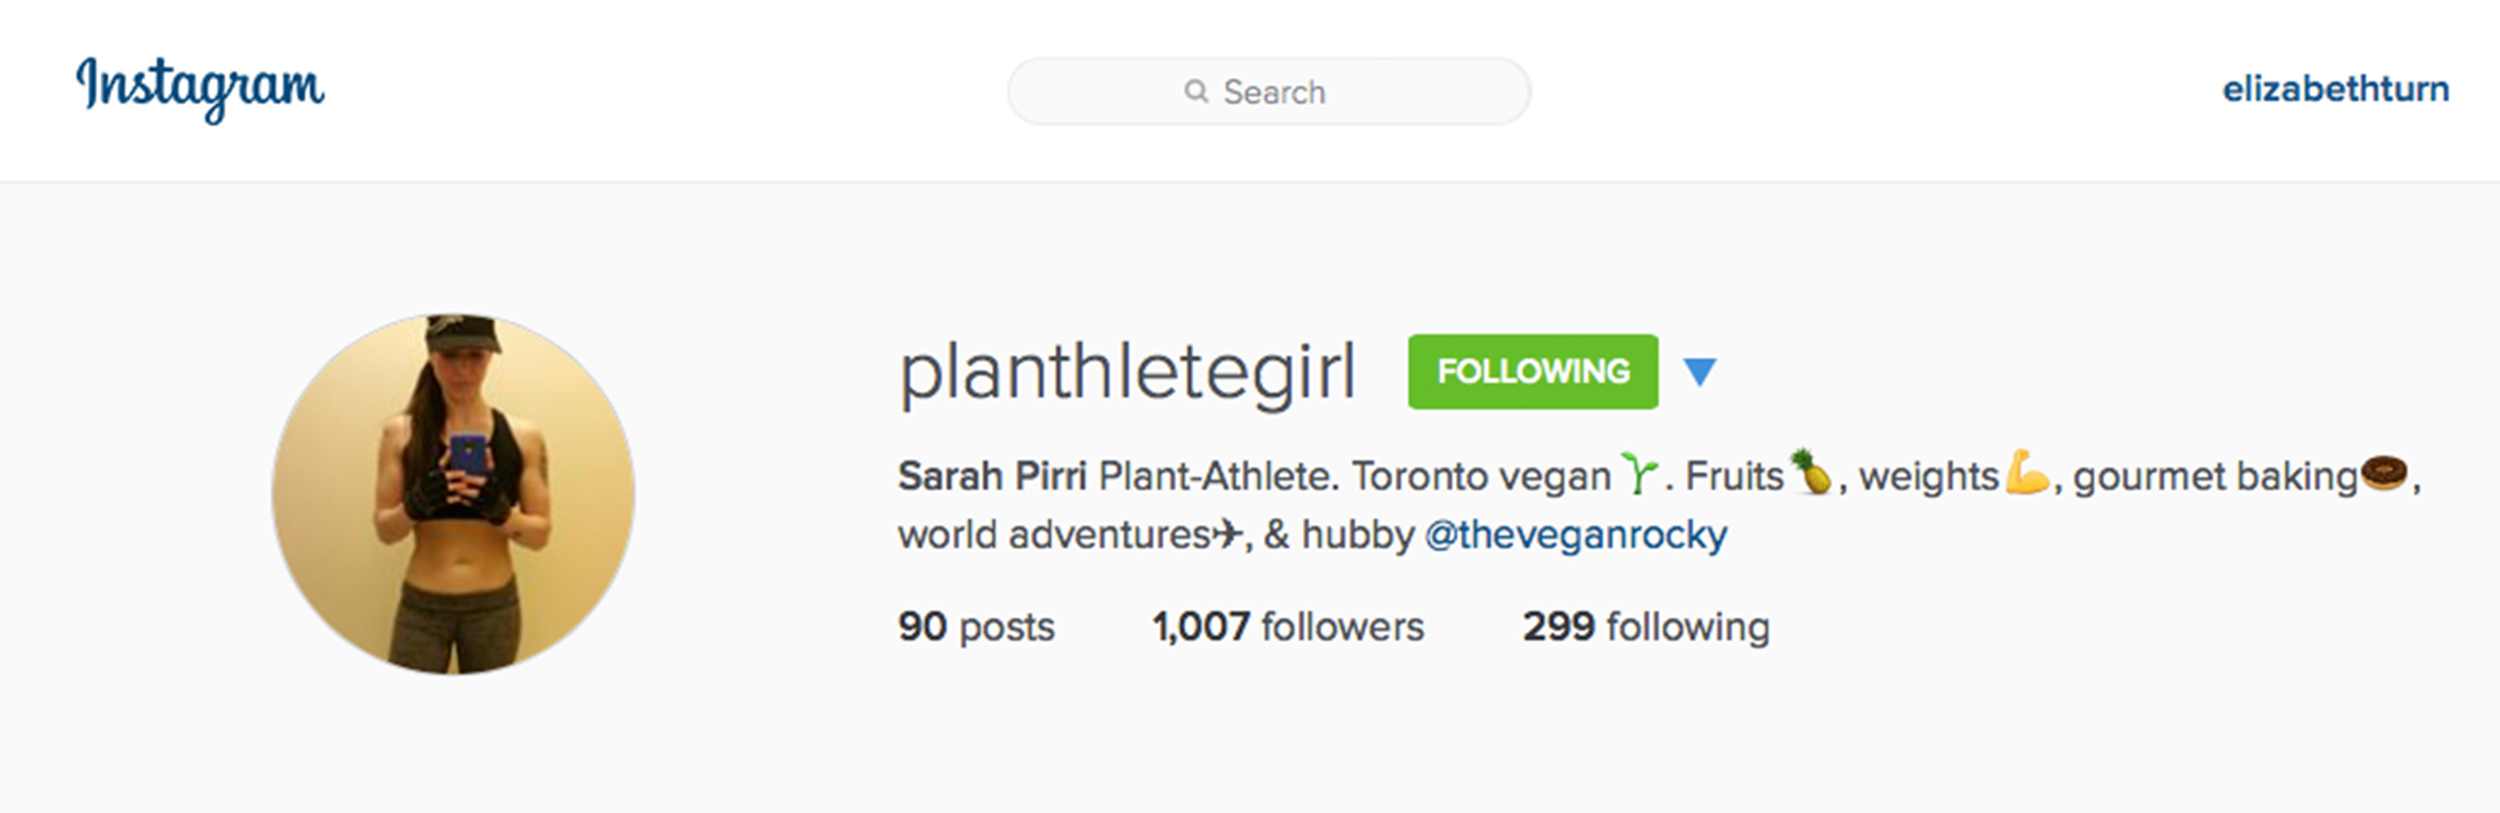 planthletegirl on instagram from plantbasedbride.com